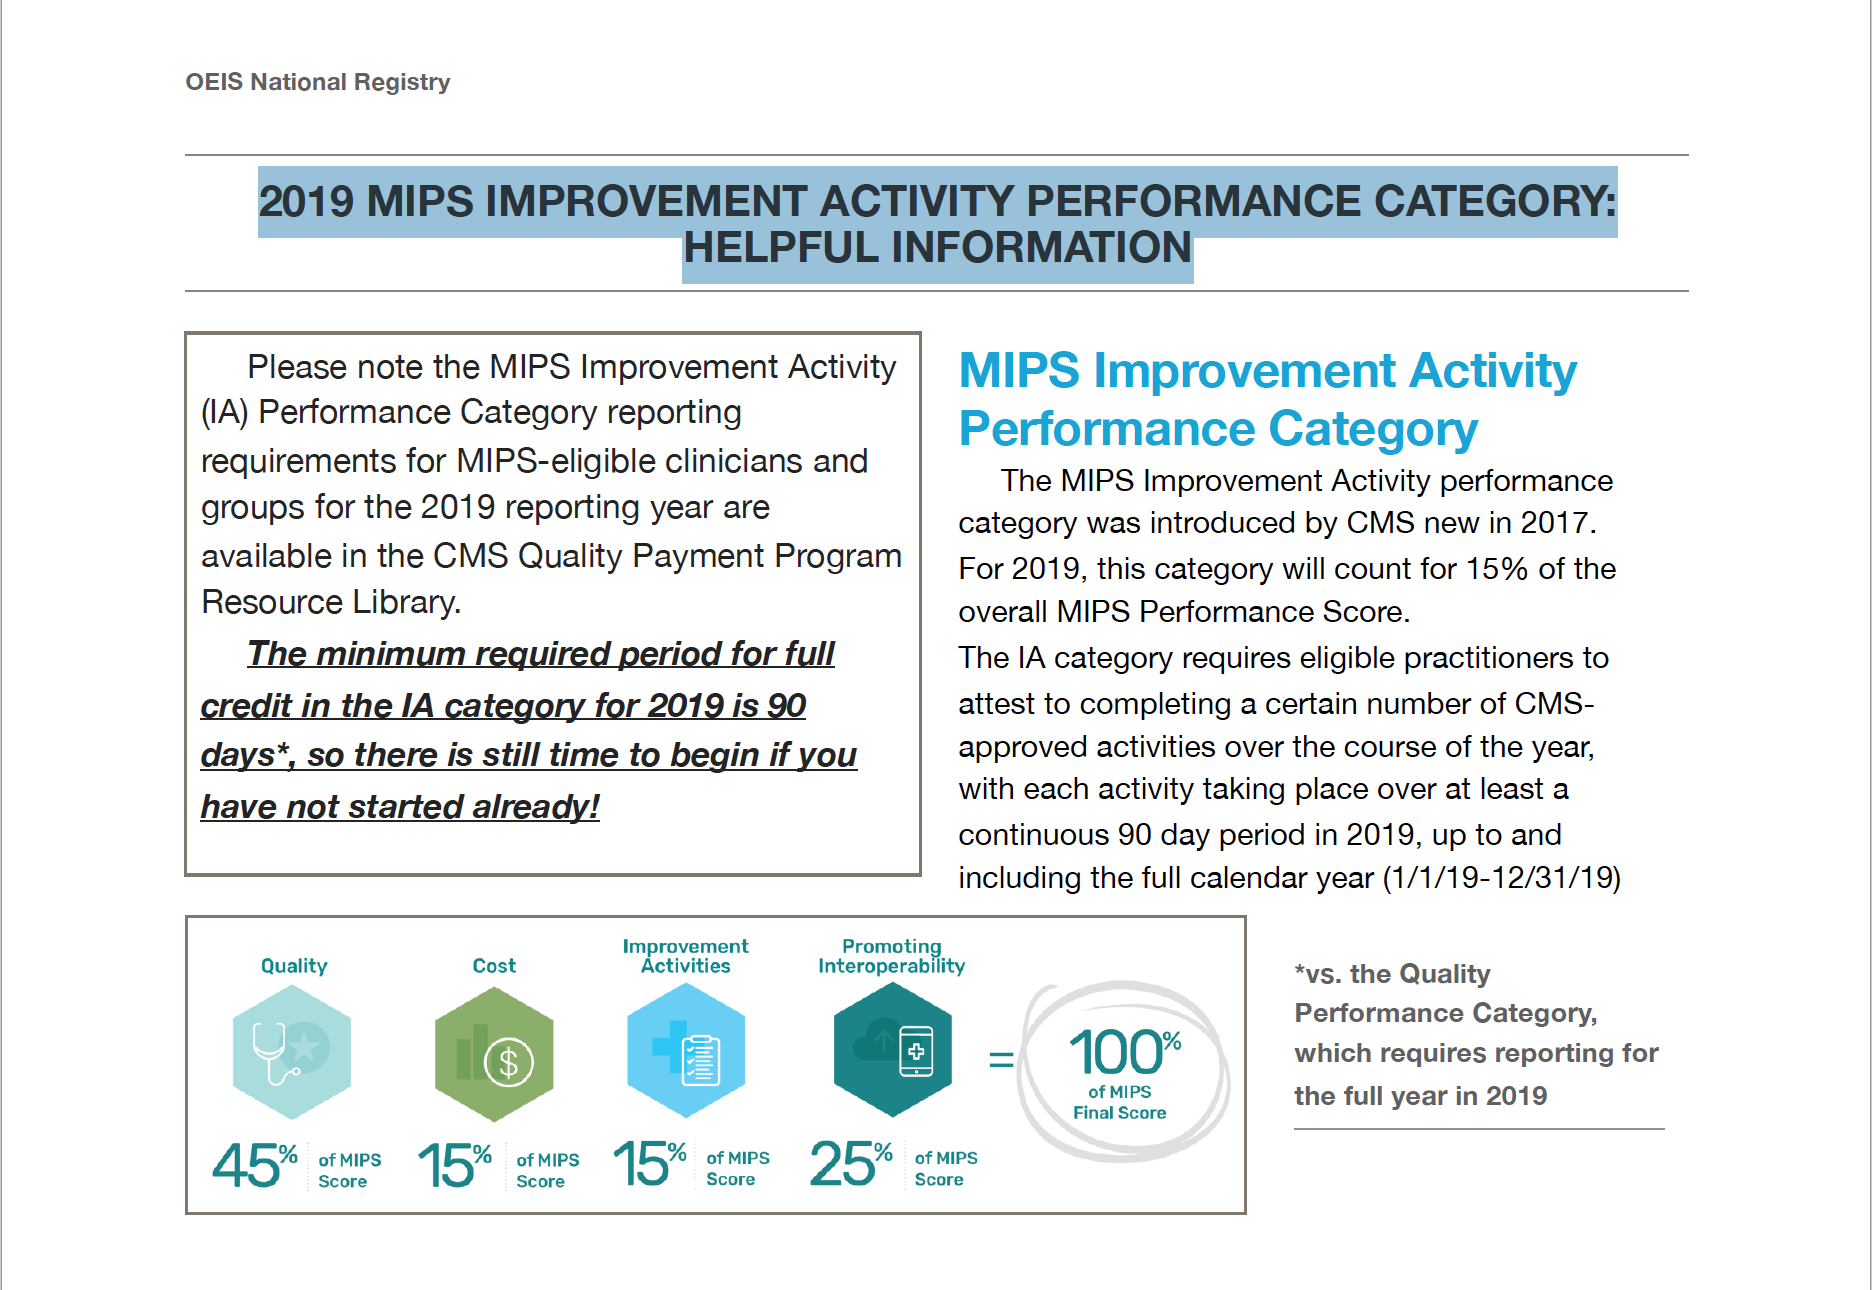 2019 MIPS Improvement Activity Performance Category -- Helpful Information.